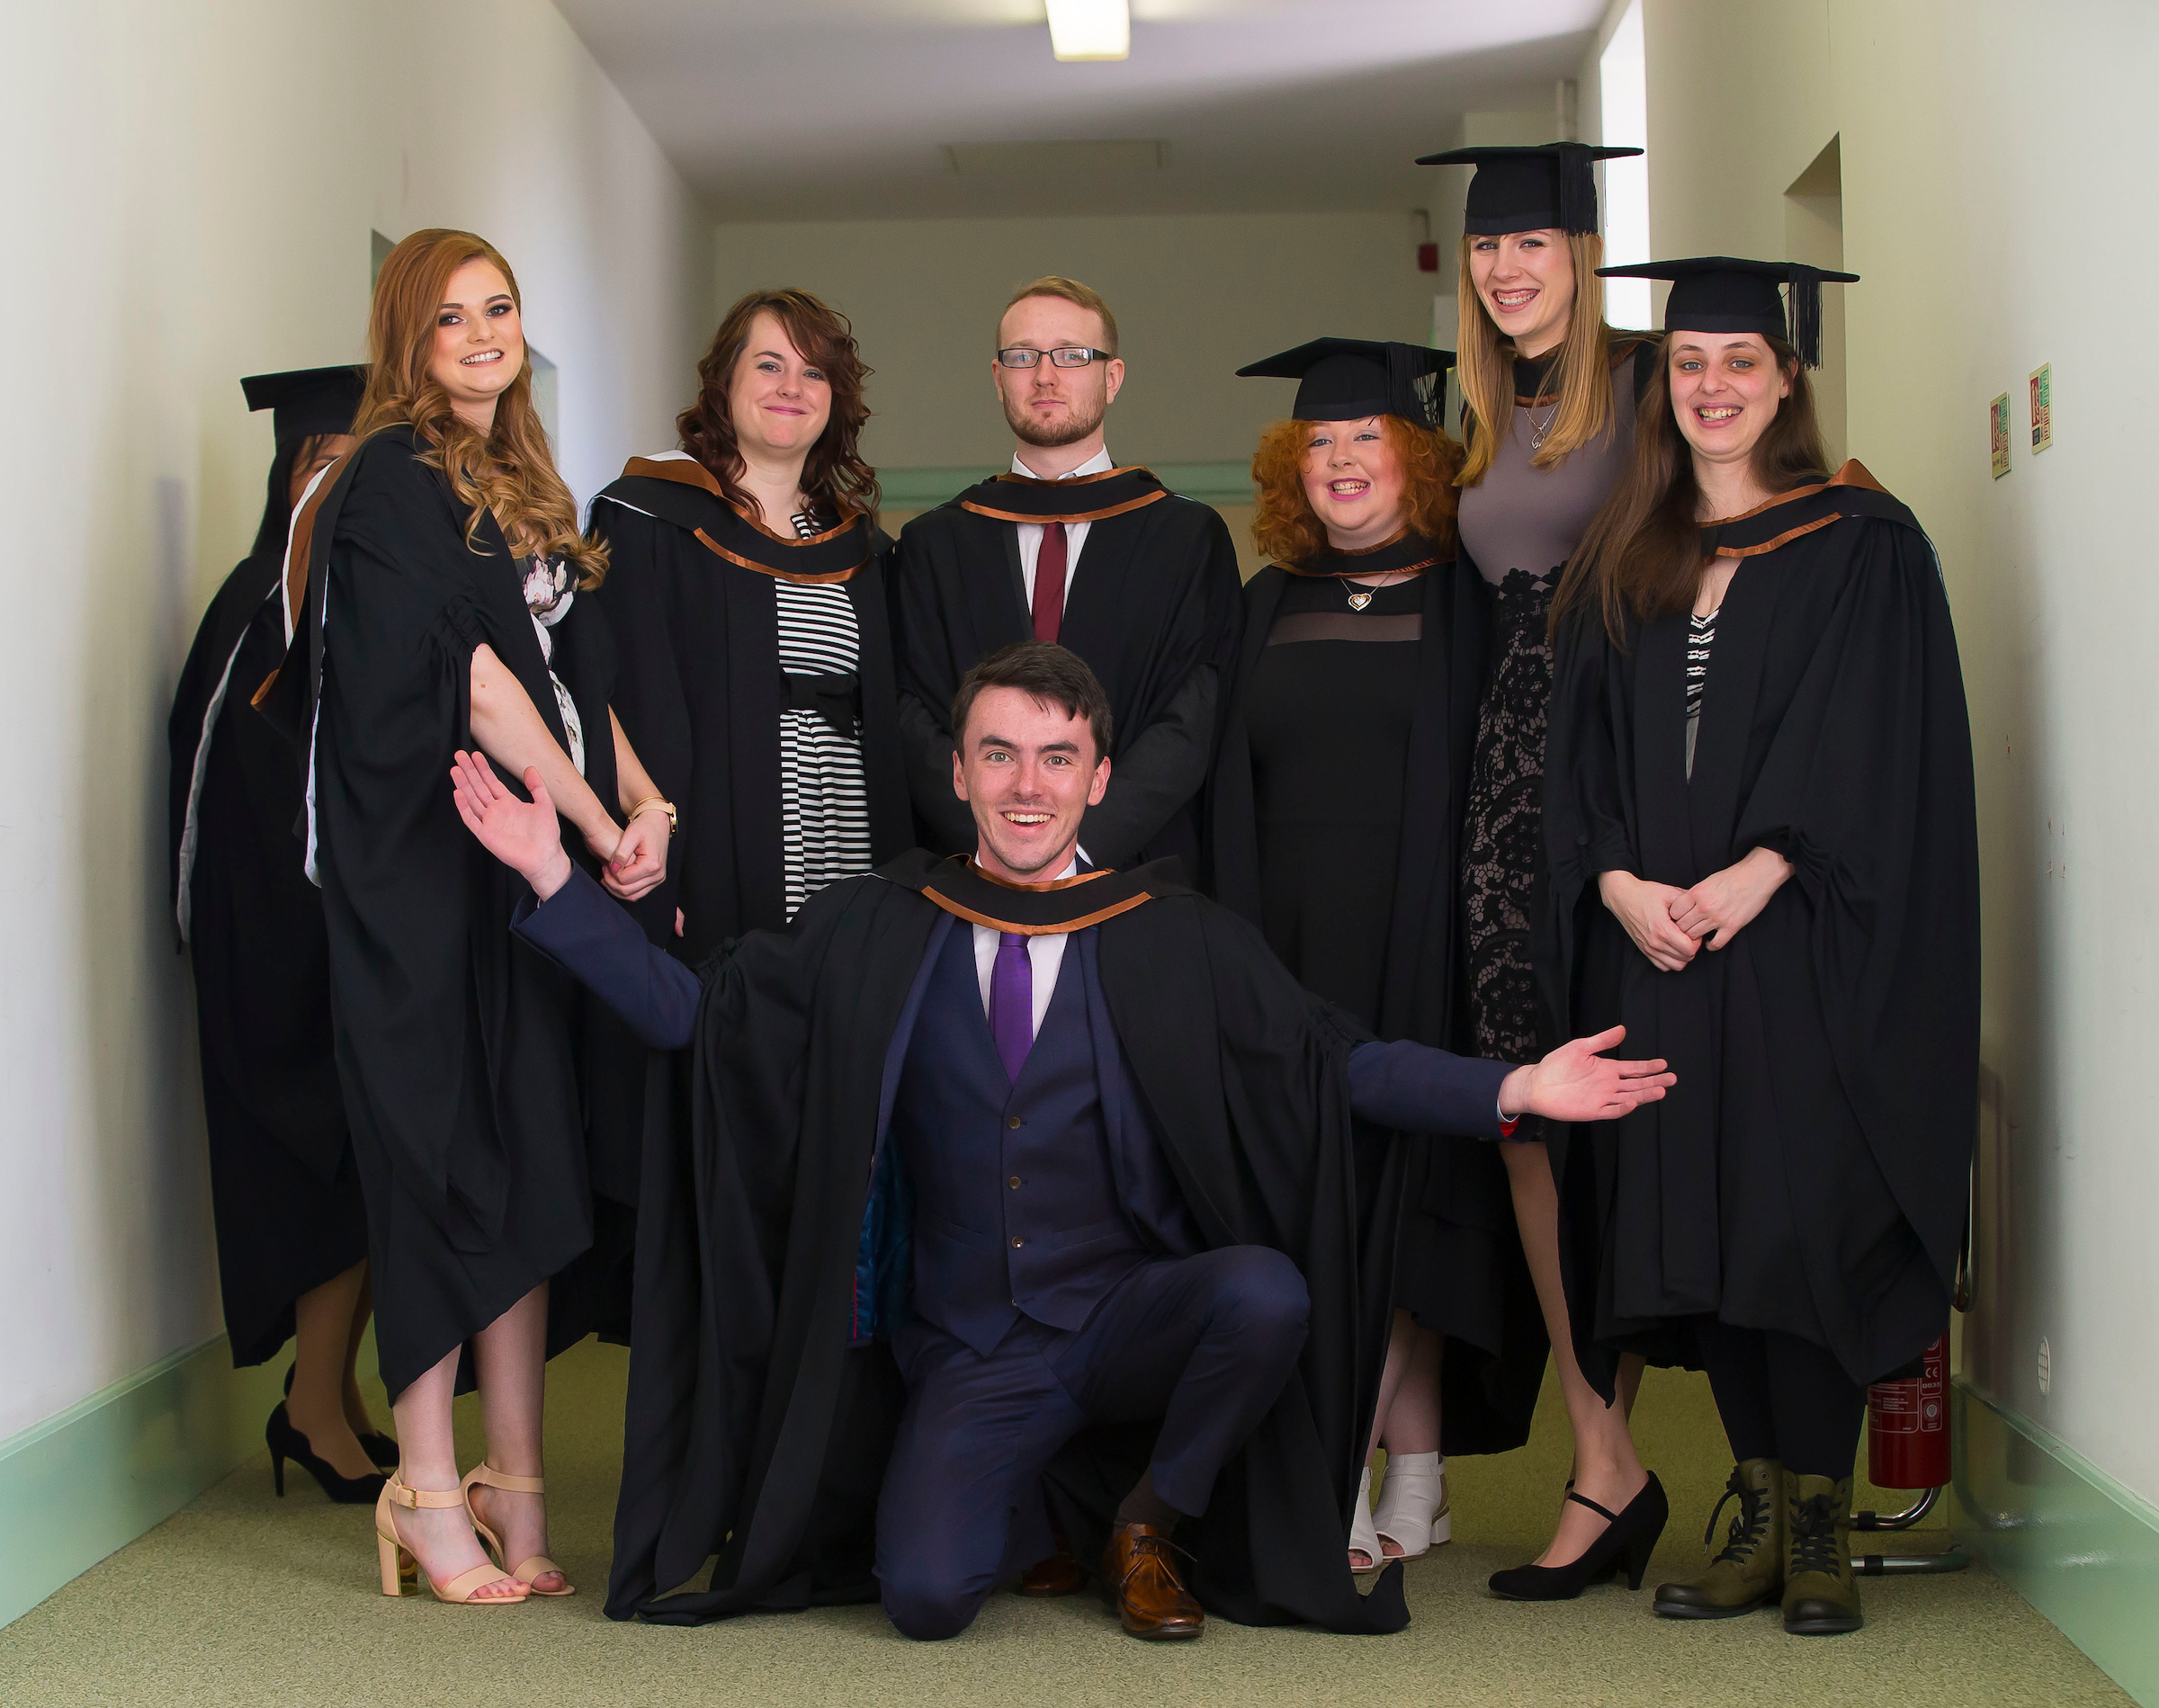 Jacqueline Purcell, far right, with her classmates from the BA (Hons) in Arts at Graduation 2016